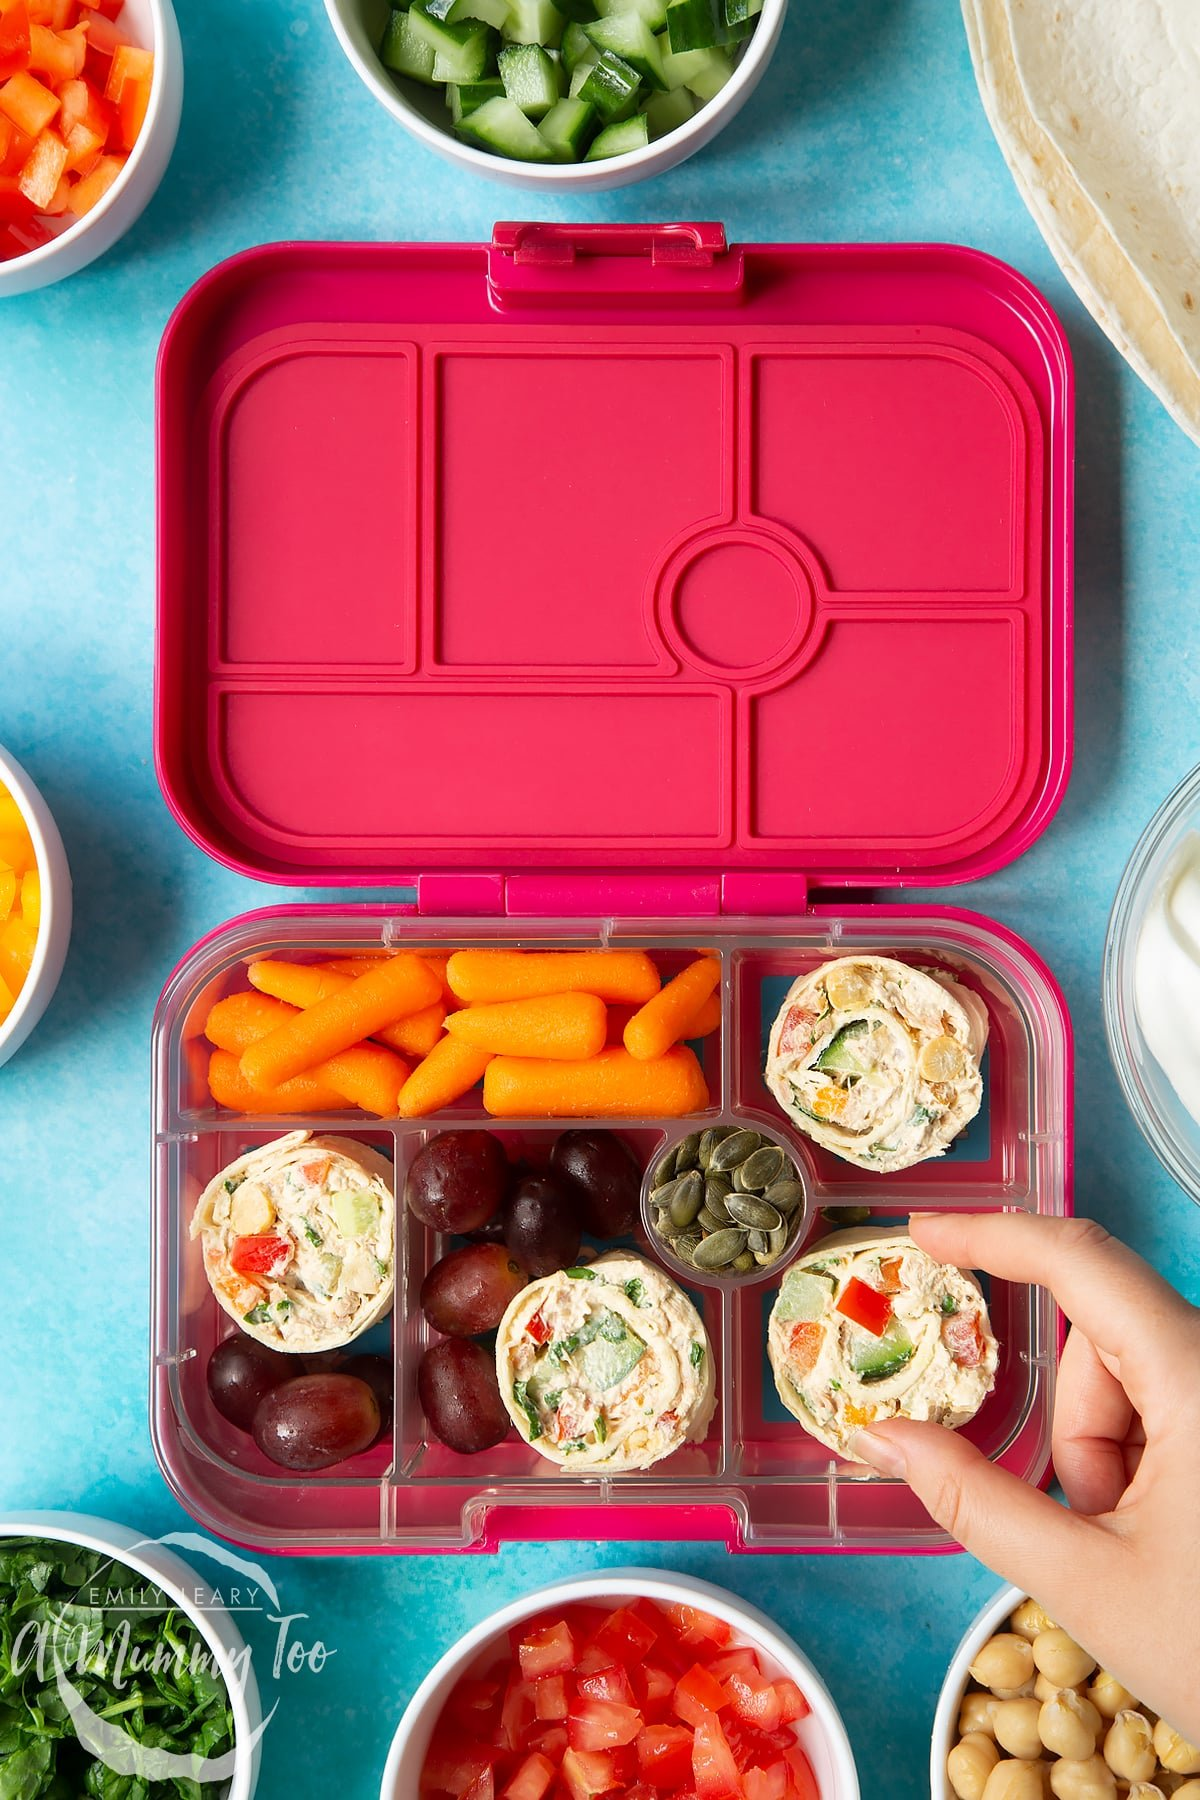 Tuna pinwheels in a lunchbox with fresh fruit and veg. A hand reaches to take a pinwheel.